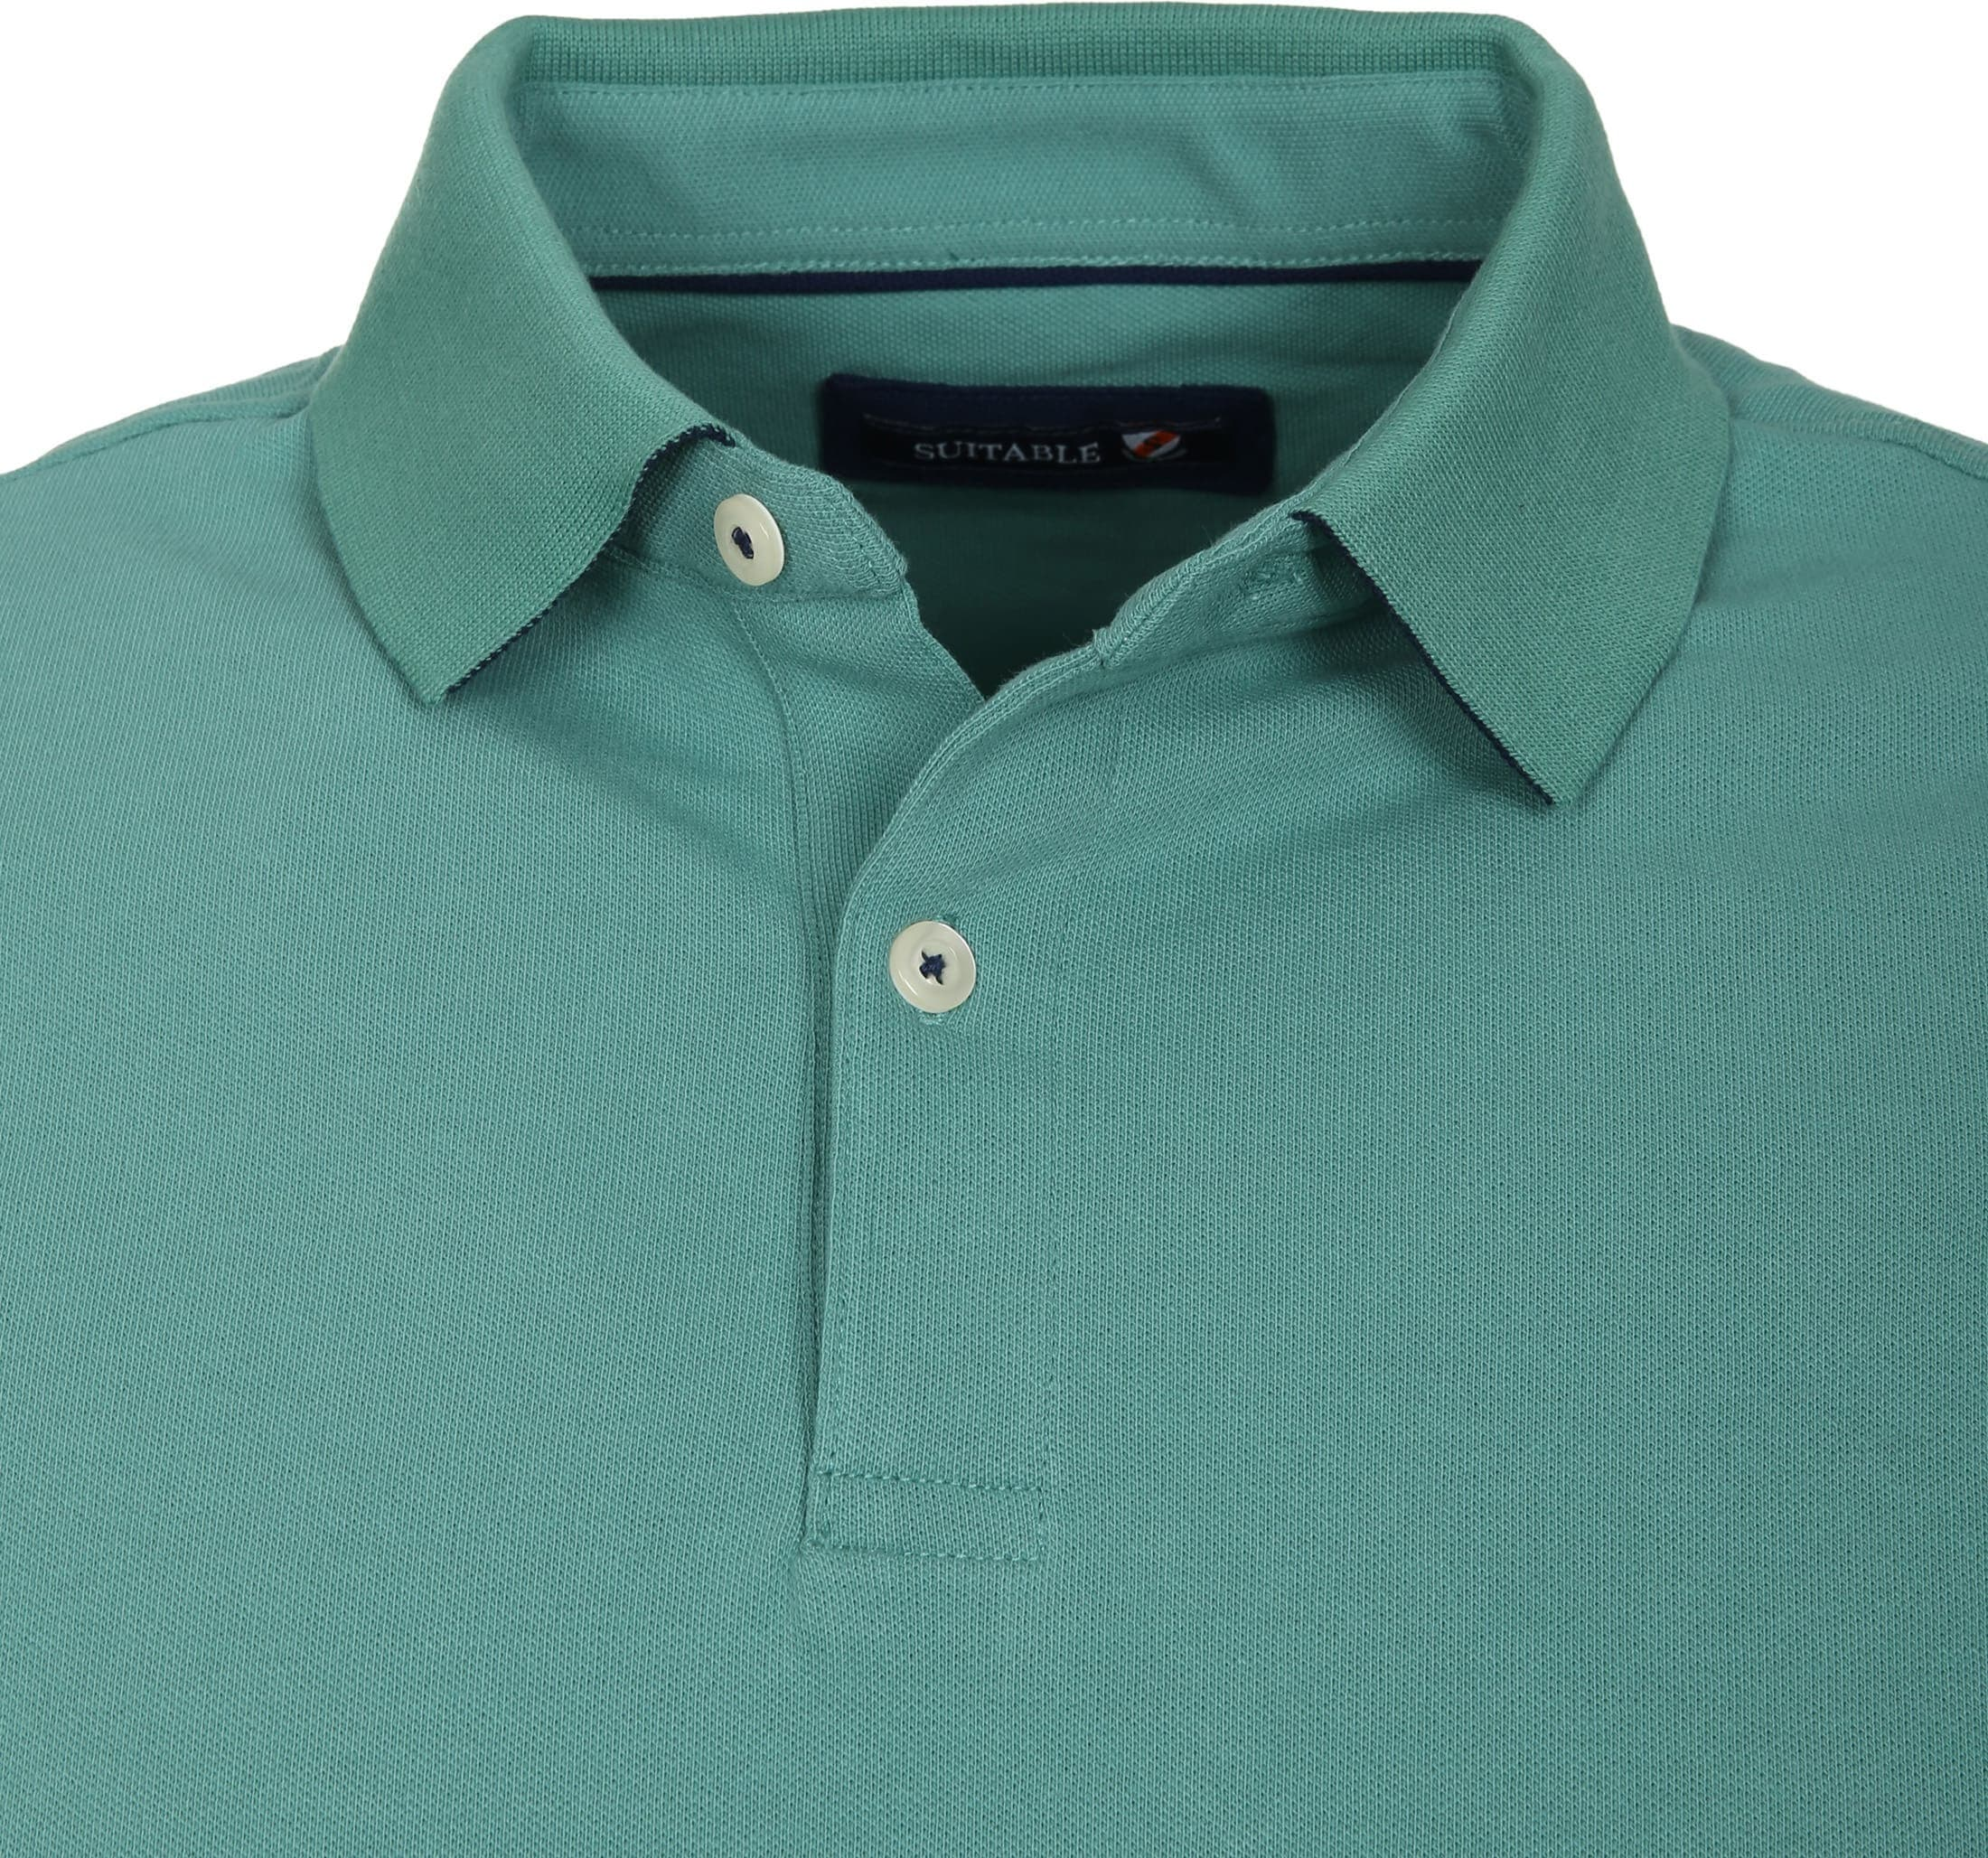 Suitable Polo Basic Groen foto 1